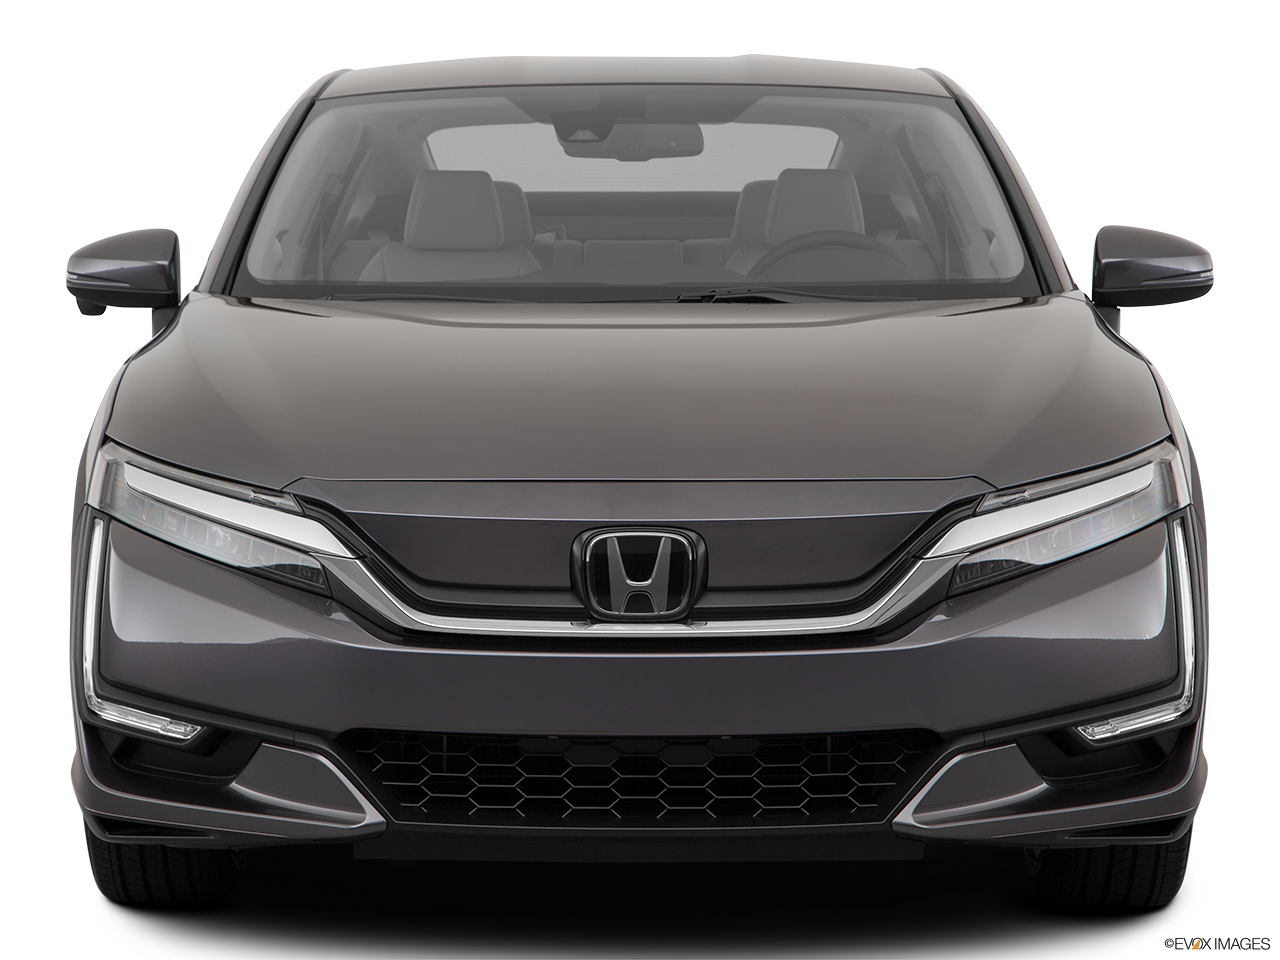 Front view of the Honda Clarity Electric